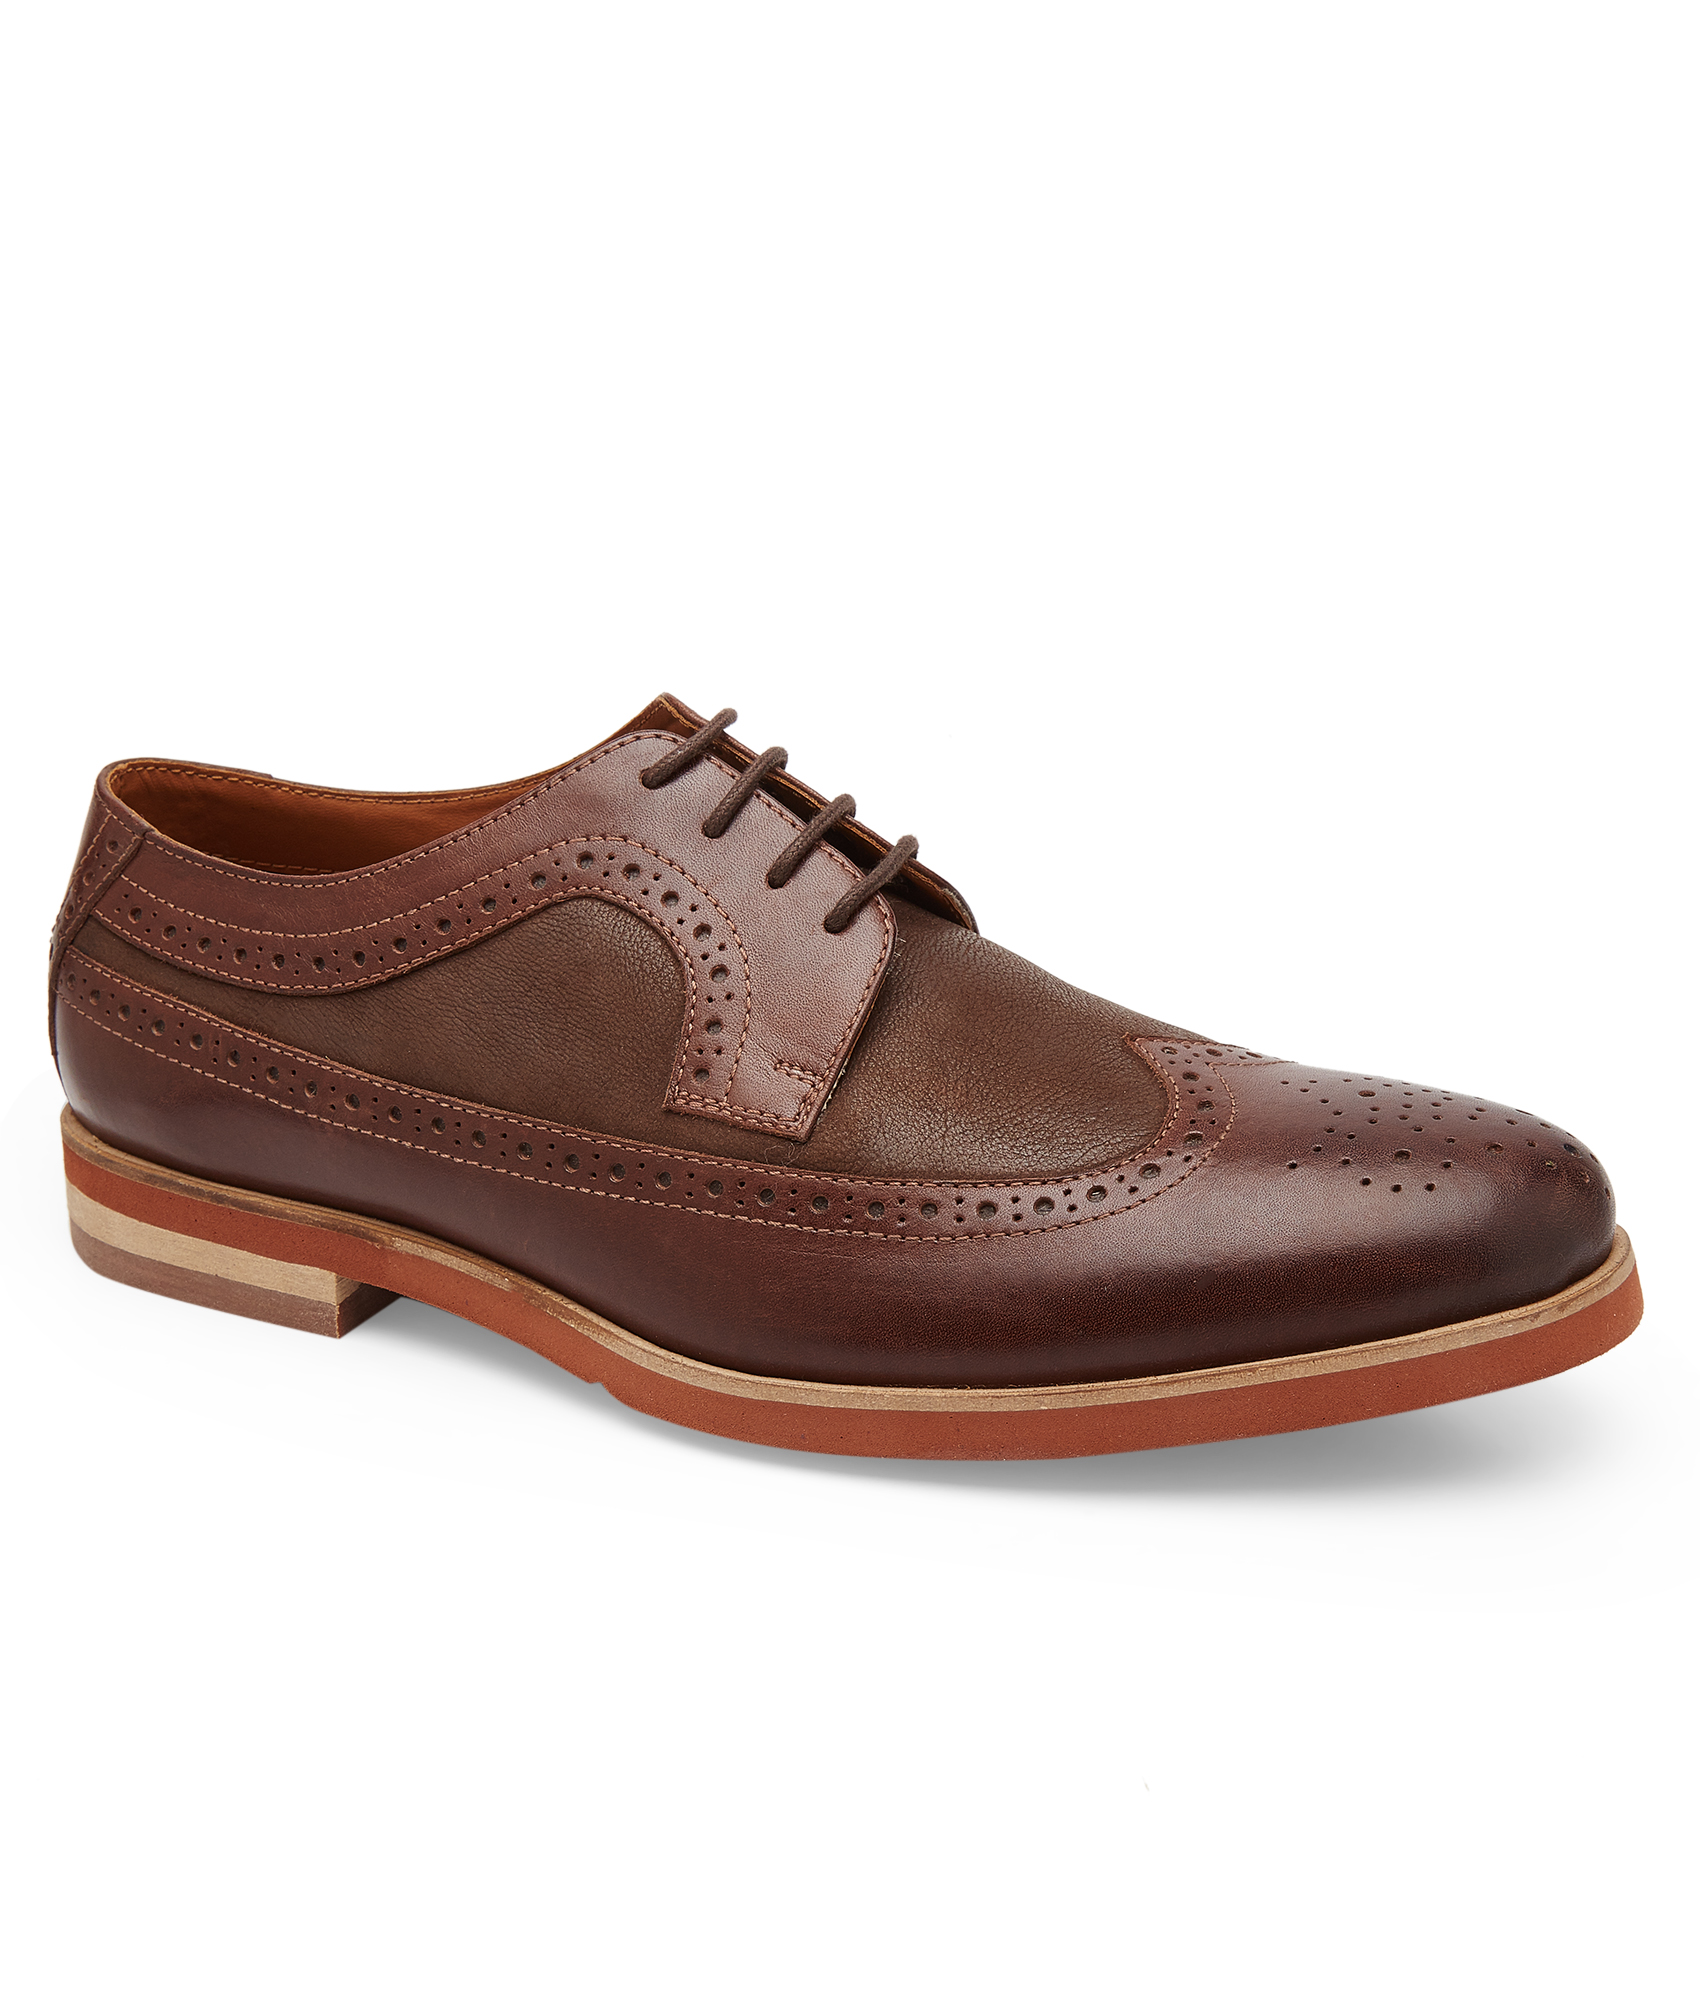 mens brogues dark brown